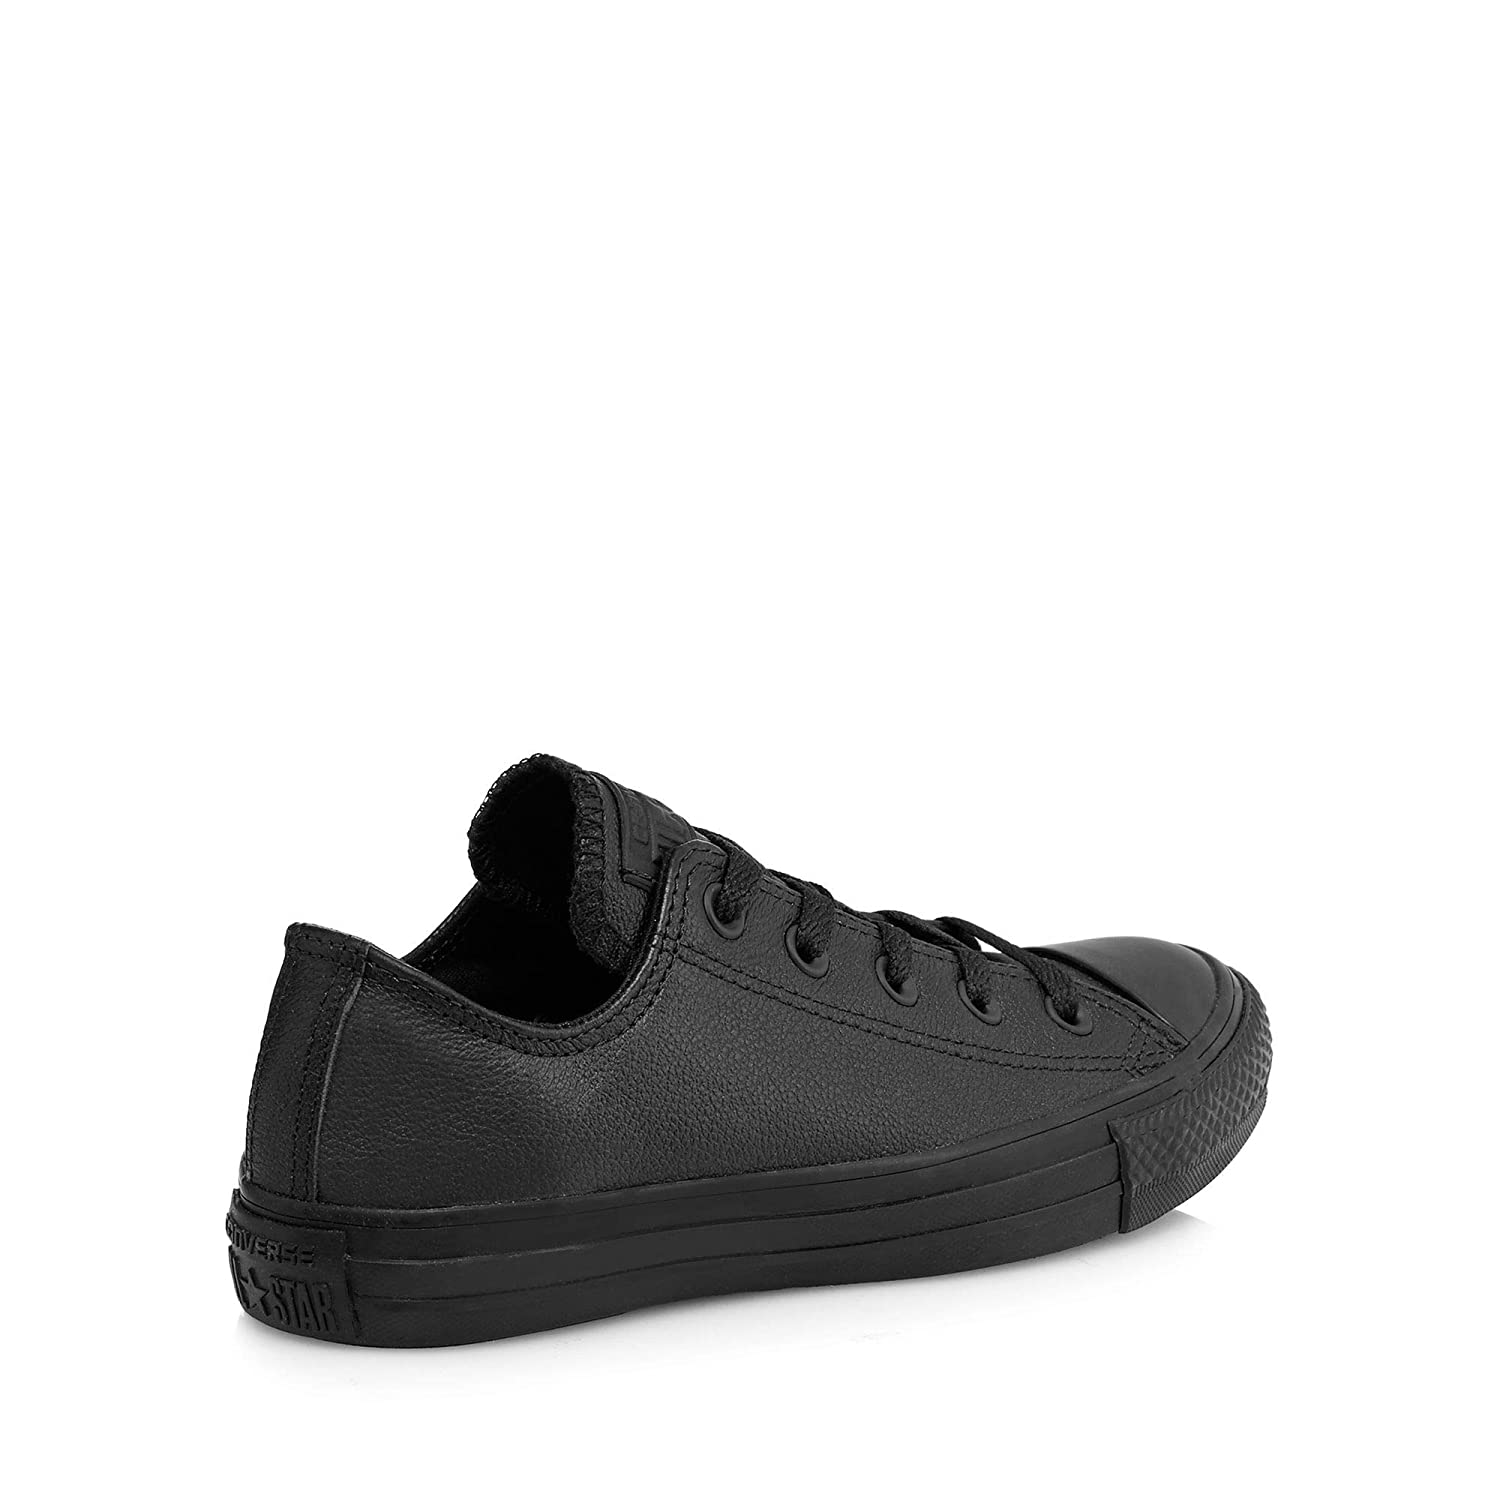 a37c4be9929 Converse Womens Black Leather  Chuck Taylor All Star Ox  Trainers  Converse   Amazon.co.uk  Clothing